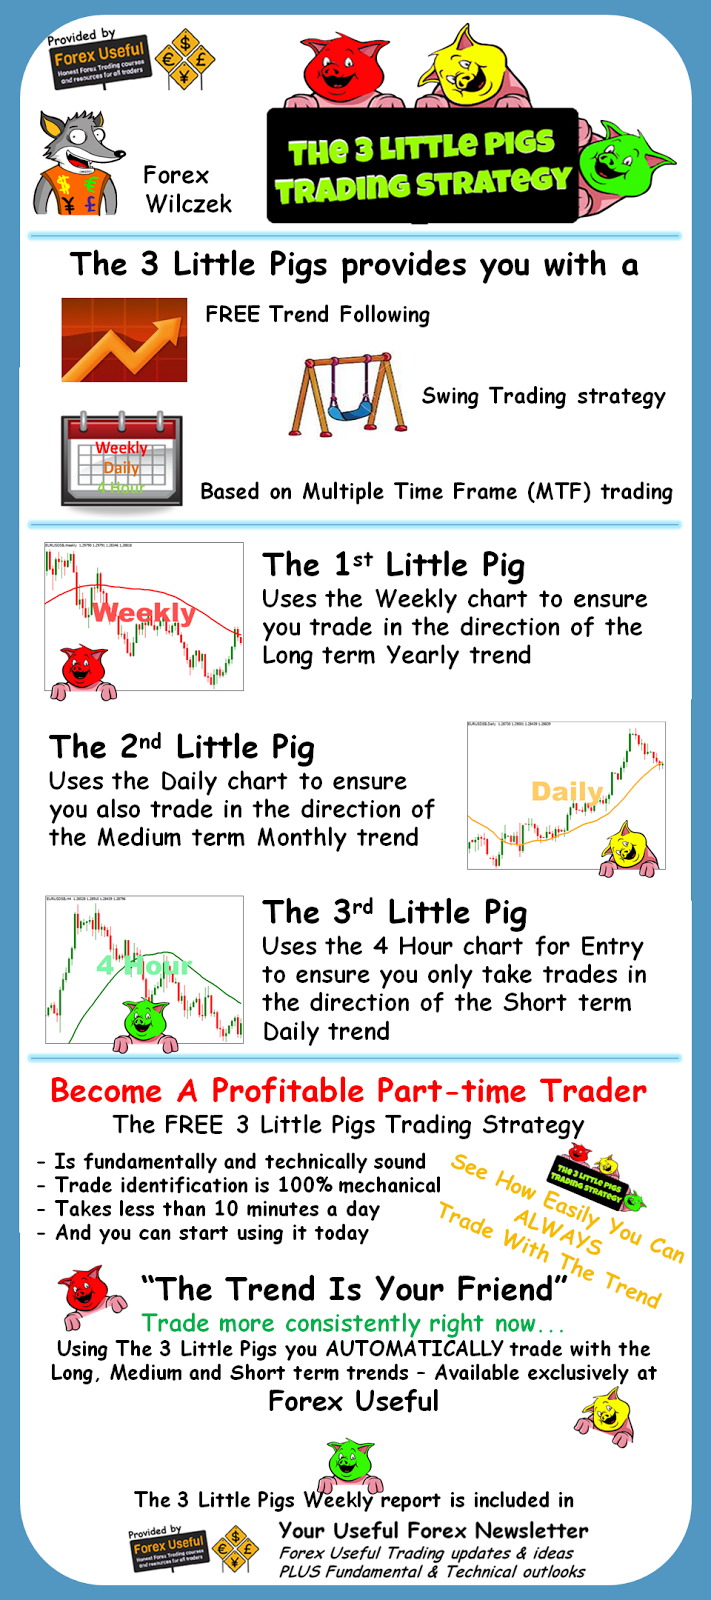 Trading strategy vs. trading plan